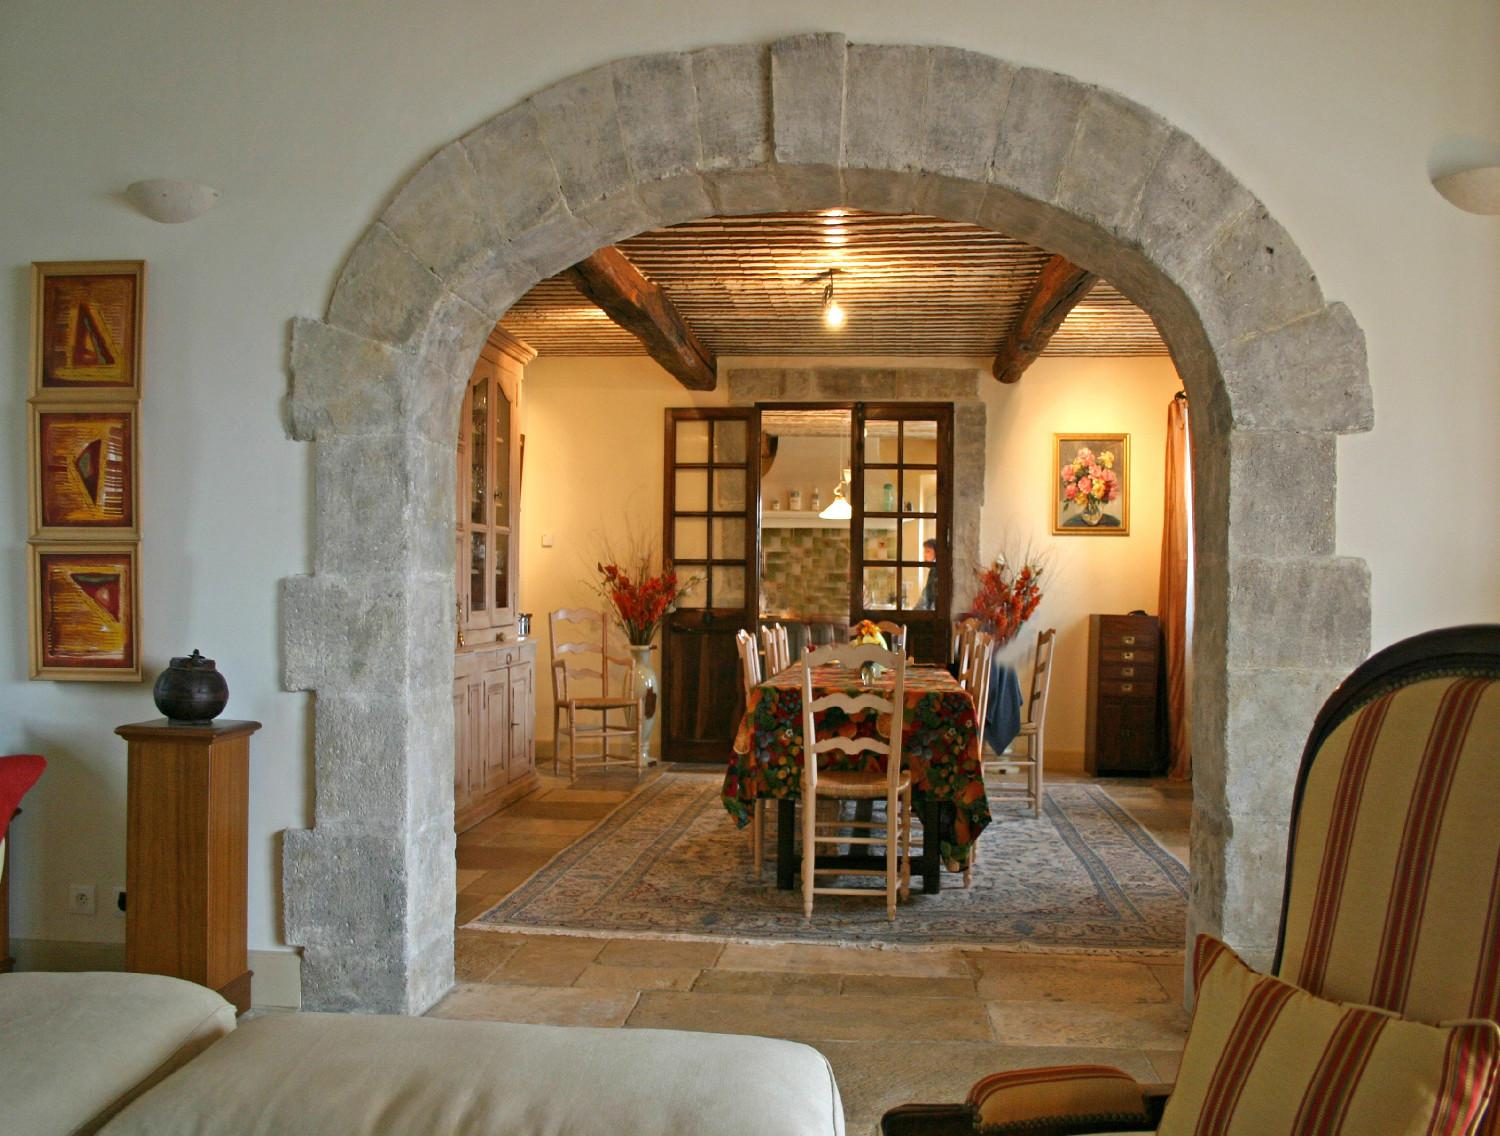 Newly built houses a provencal mas made of stone a for Salle a manger en pierre